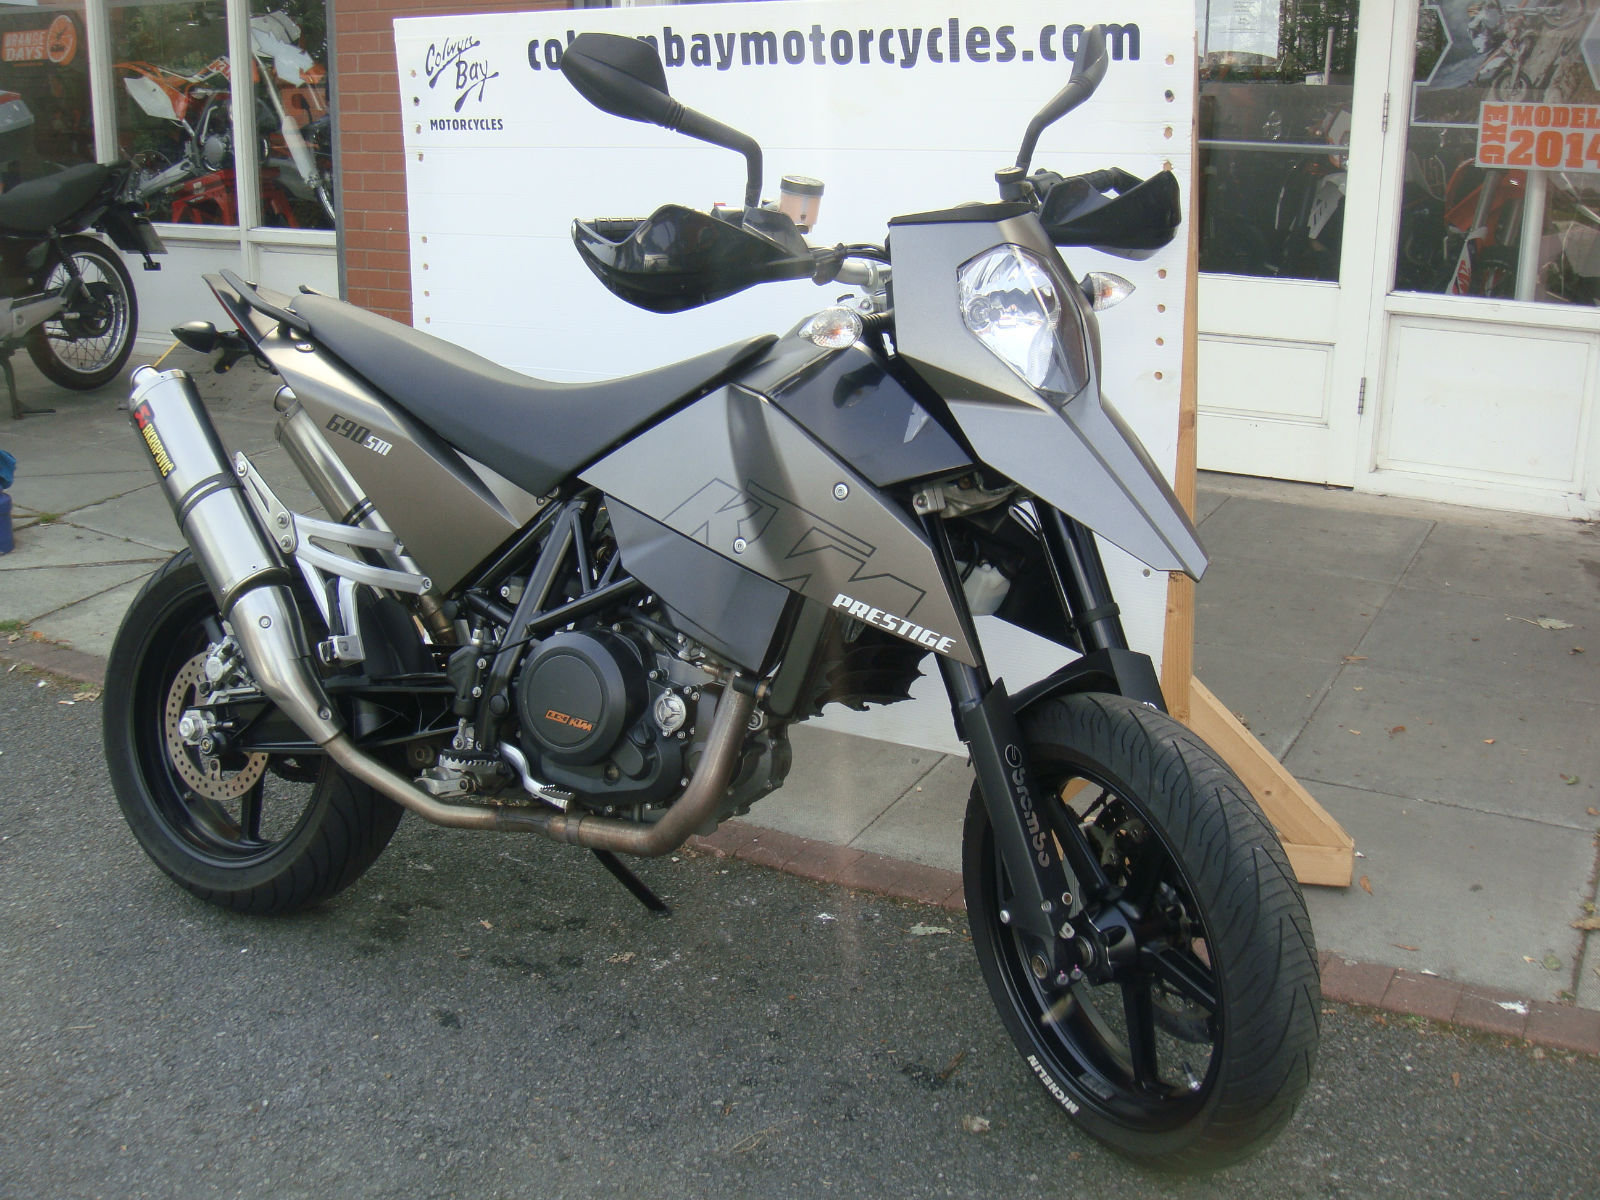 2007 ktm 690 lc4 supermoto sm duke akrapovic motorcycle. Black Bedroom Furniture Sets. Home Design Ideas